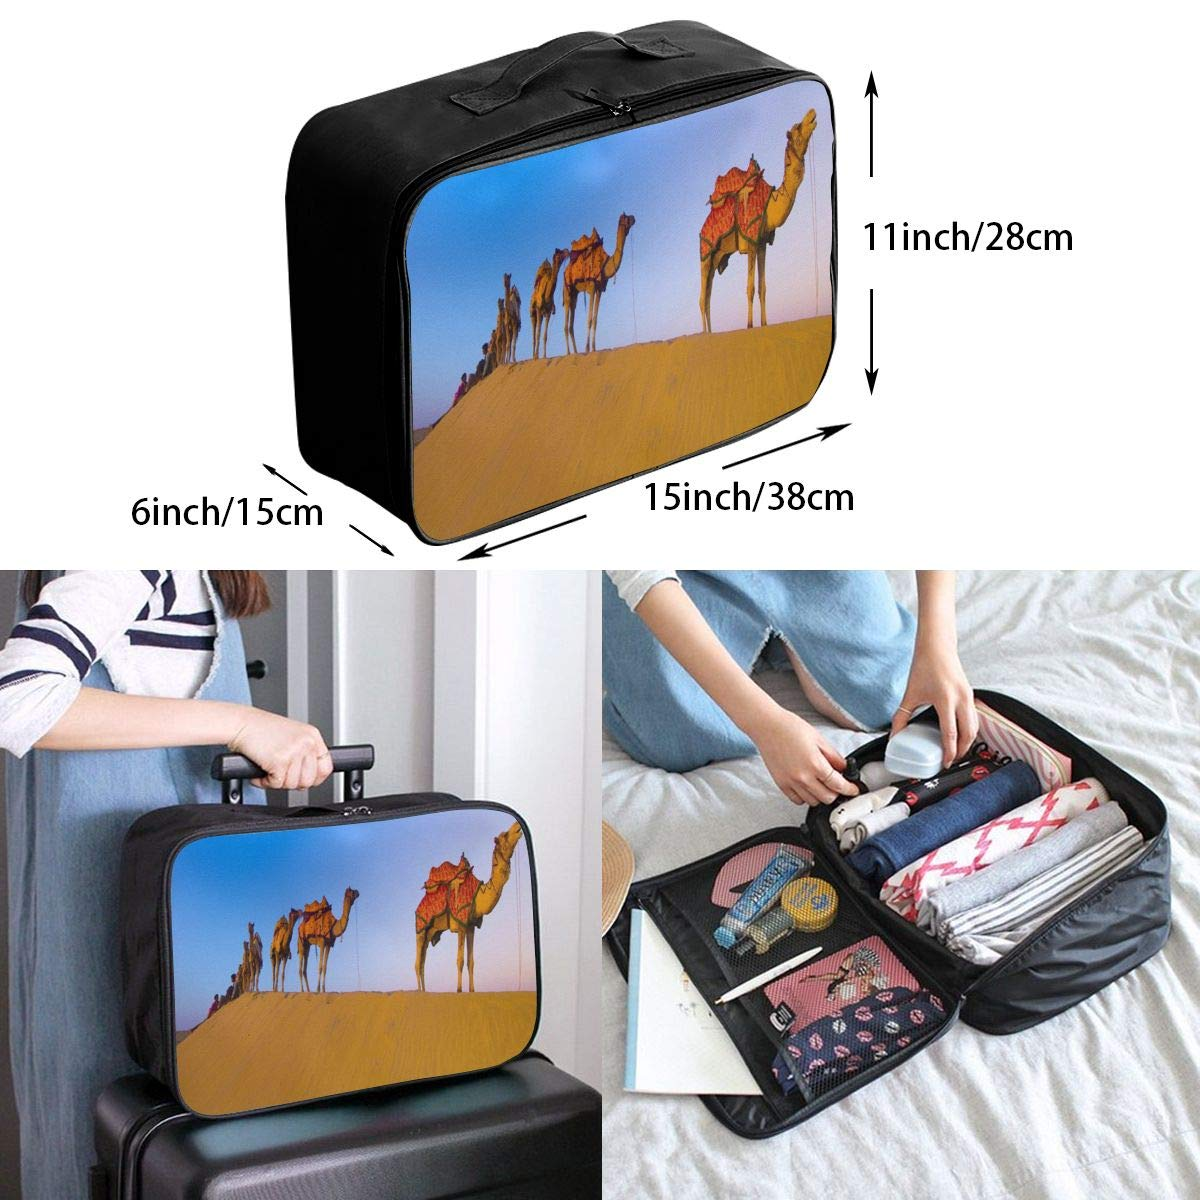 Lightweight Large Capacity Portable Luggage Bag Desert Camel Team Travel Waterproof Foldable Storage Carry Tote Bag